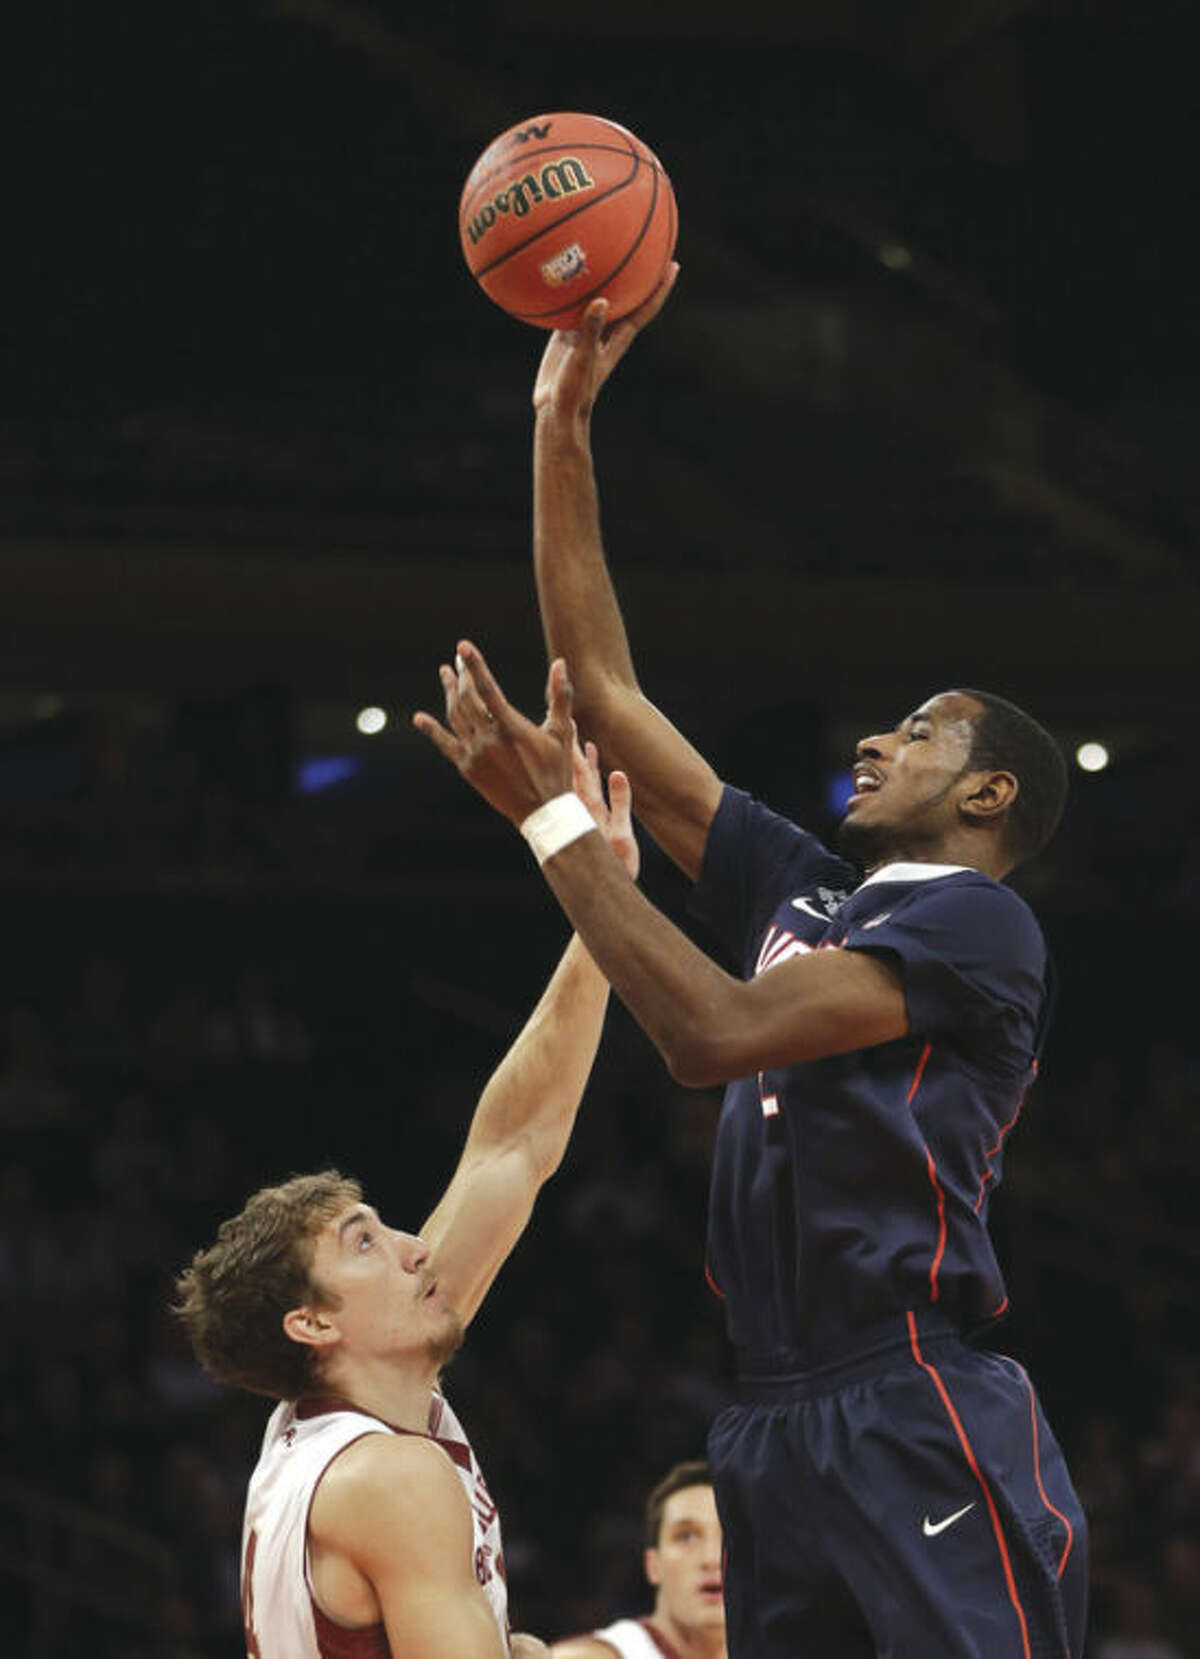 AP photo UConn's DeAndre Daniels, right, shoots over Boston College's Eddie Odio during the first half of Thursday night's game at Madison Square Garden. Daniels had a team-high 23 points in the Huskies' 72-70 victory.